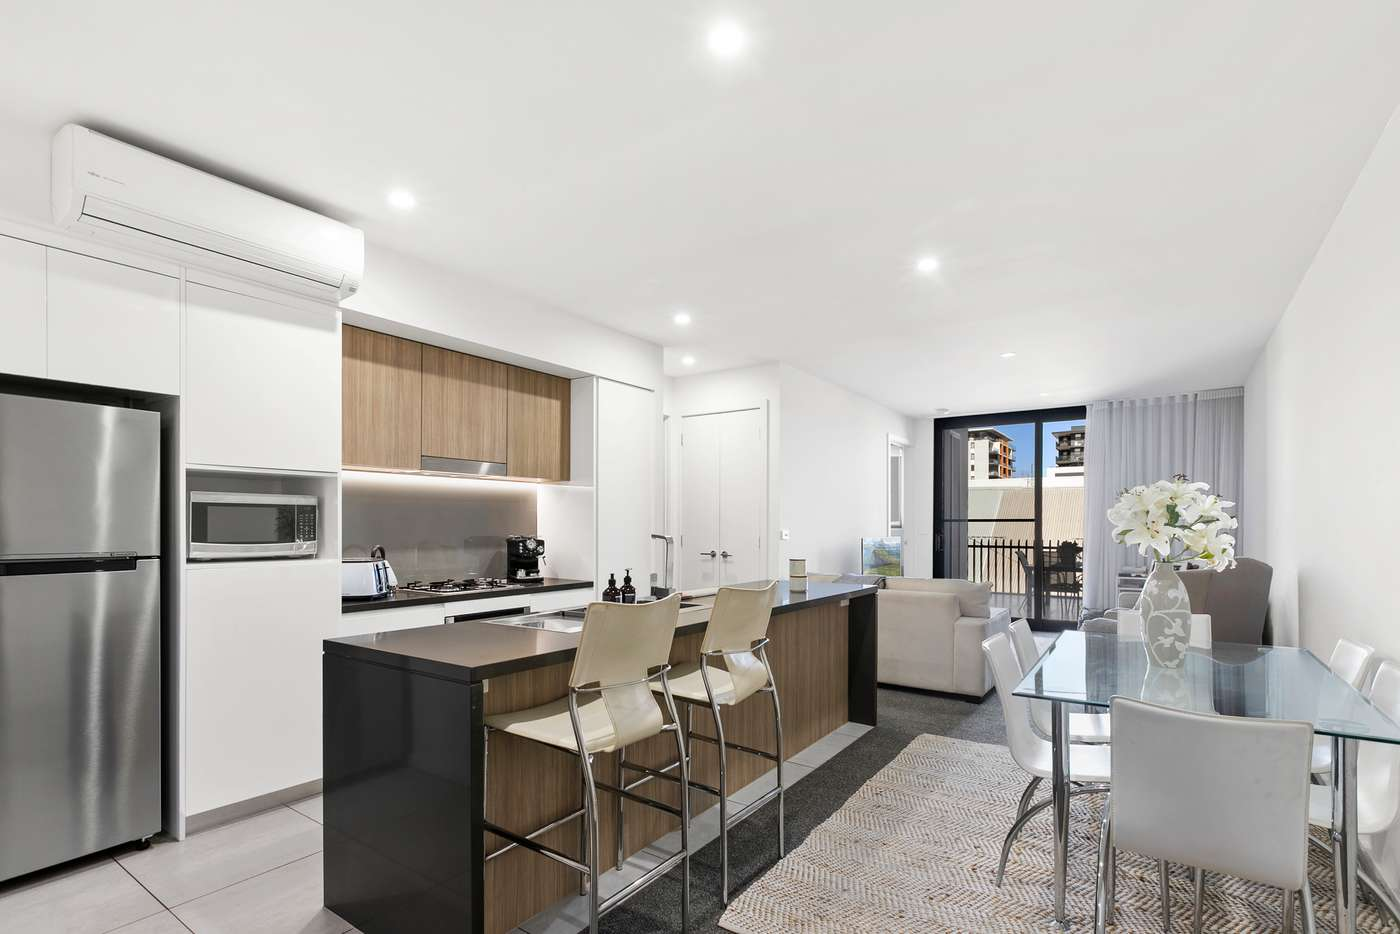 Main view of Homely unit listing, 120/18 Throsby Street, Wickham NSW 2293